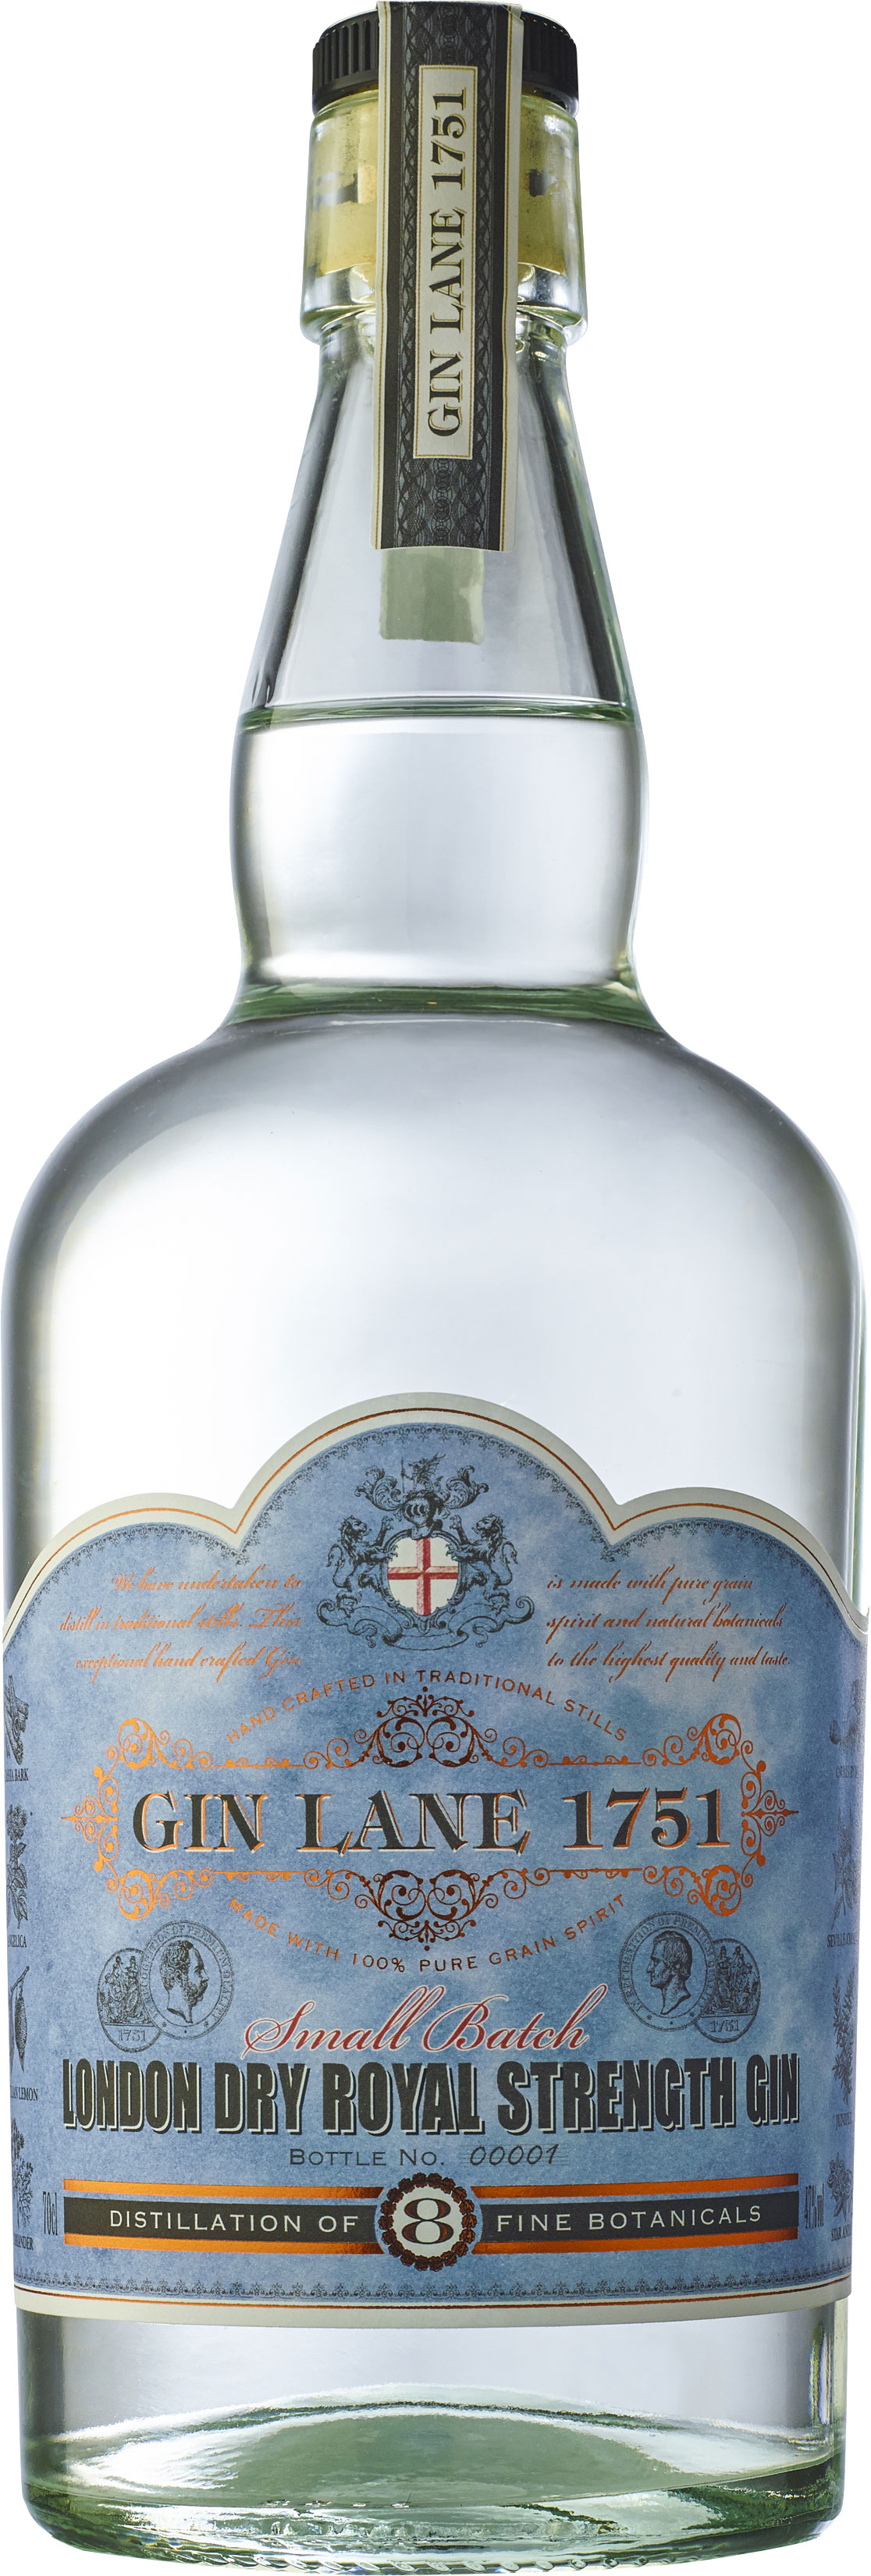 Gin Lane 1751 - London Dry Royal Strength Gin 70cl Bottle